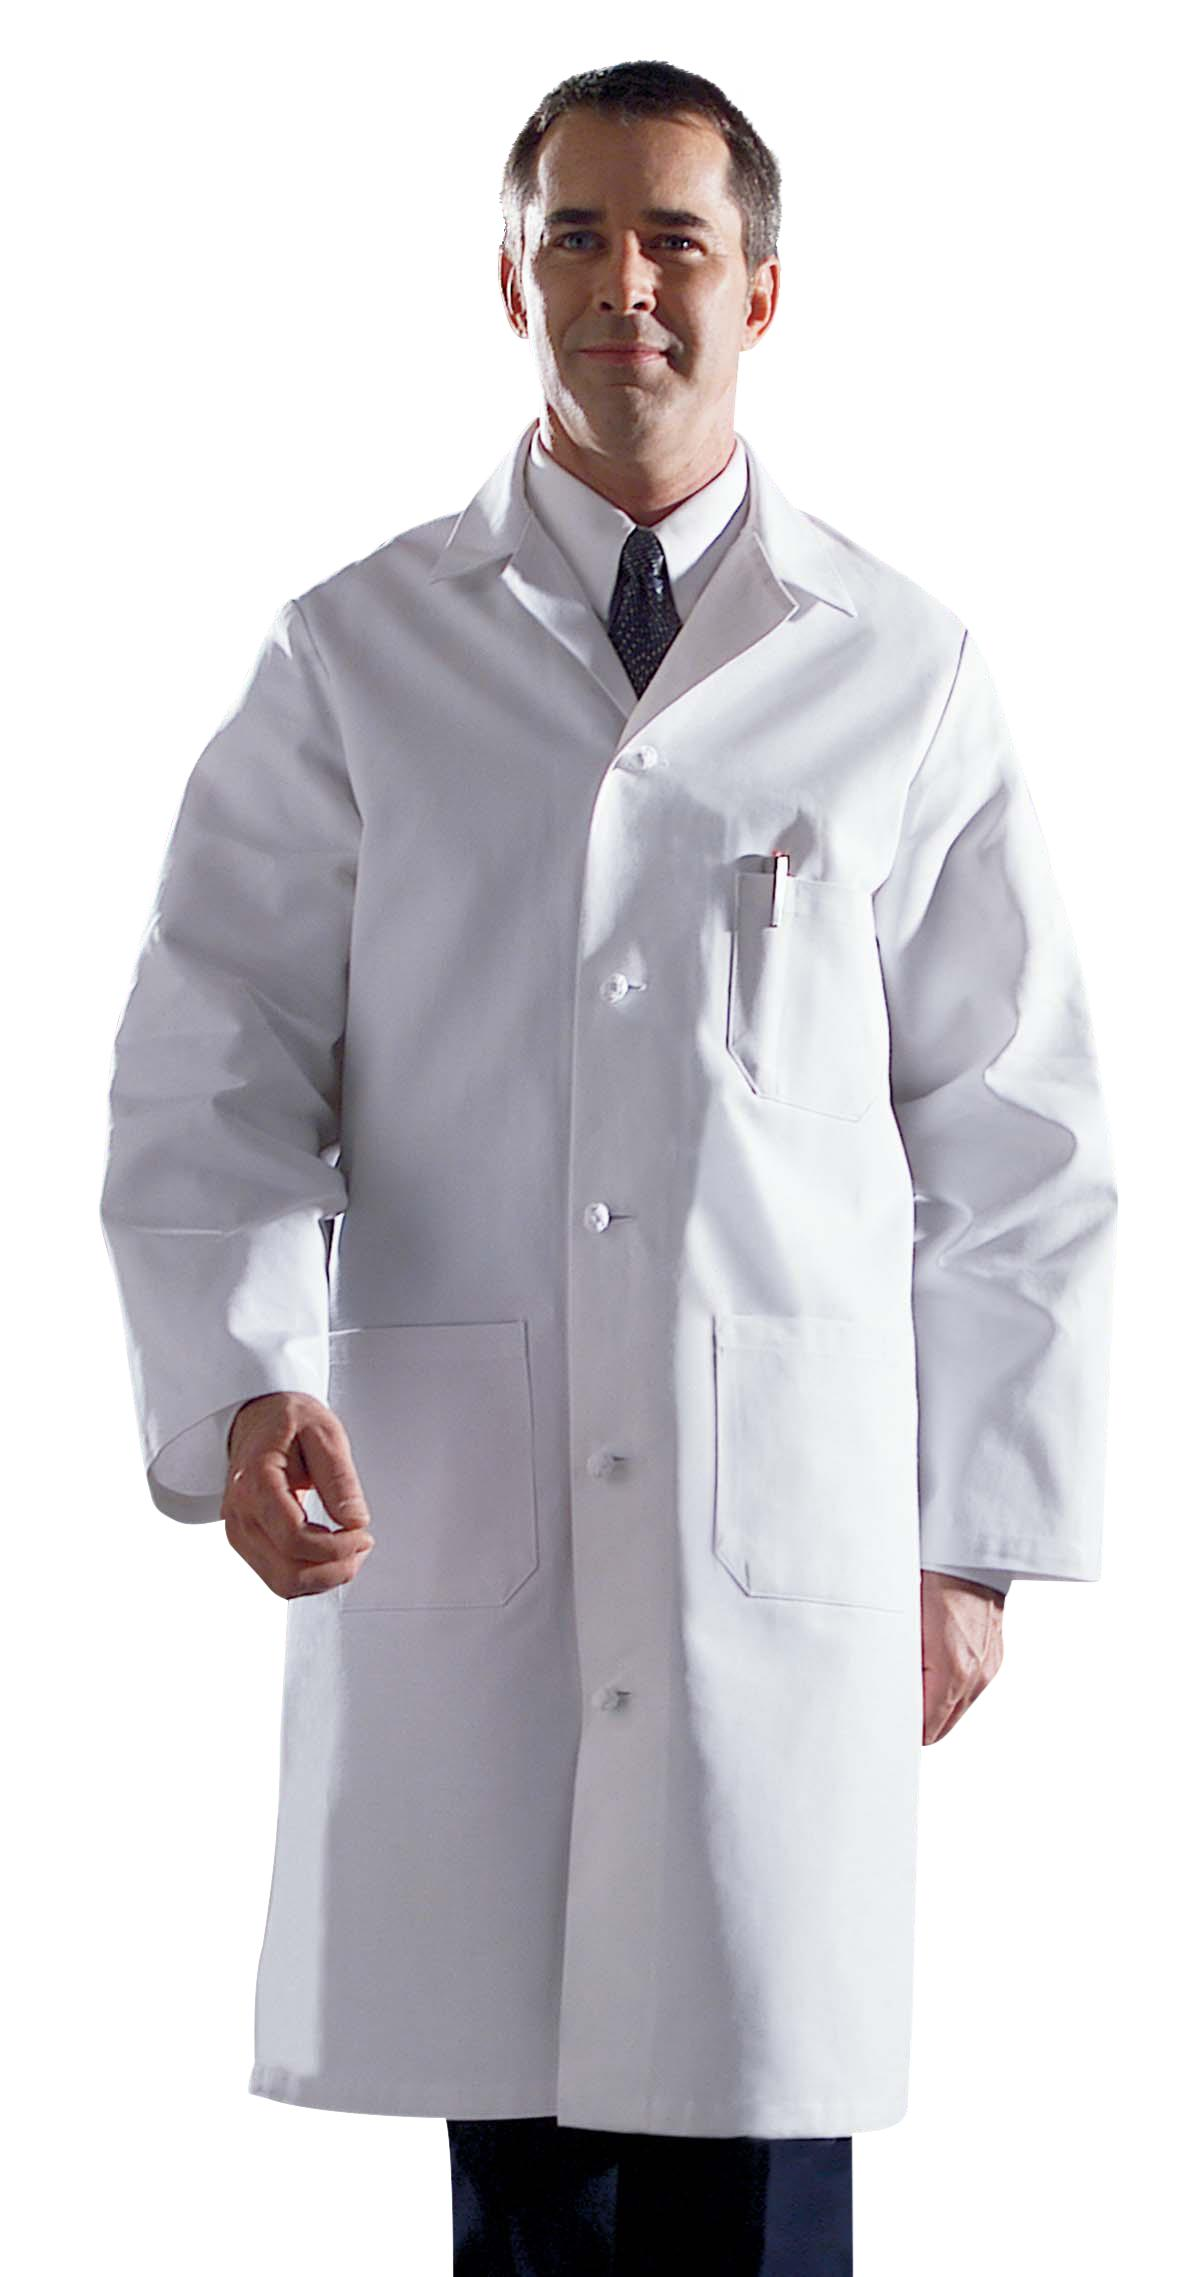 LabCoat-MDL-MDT17WHT52